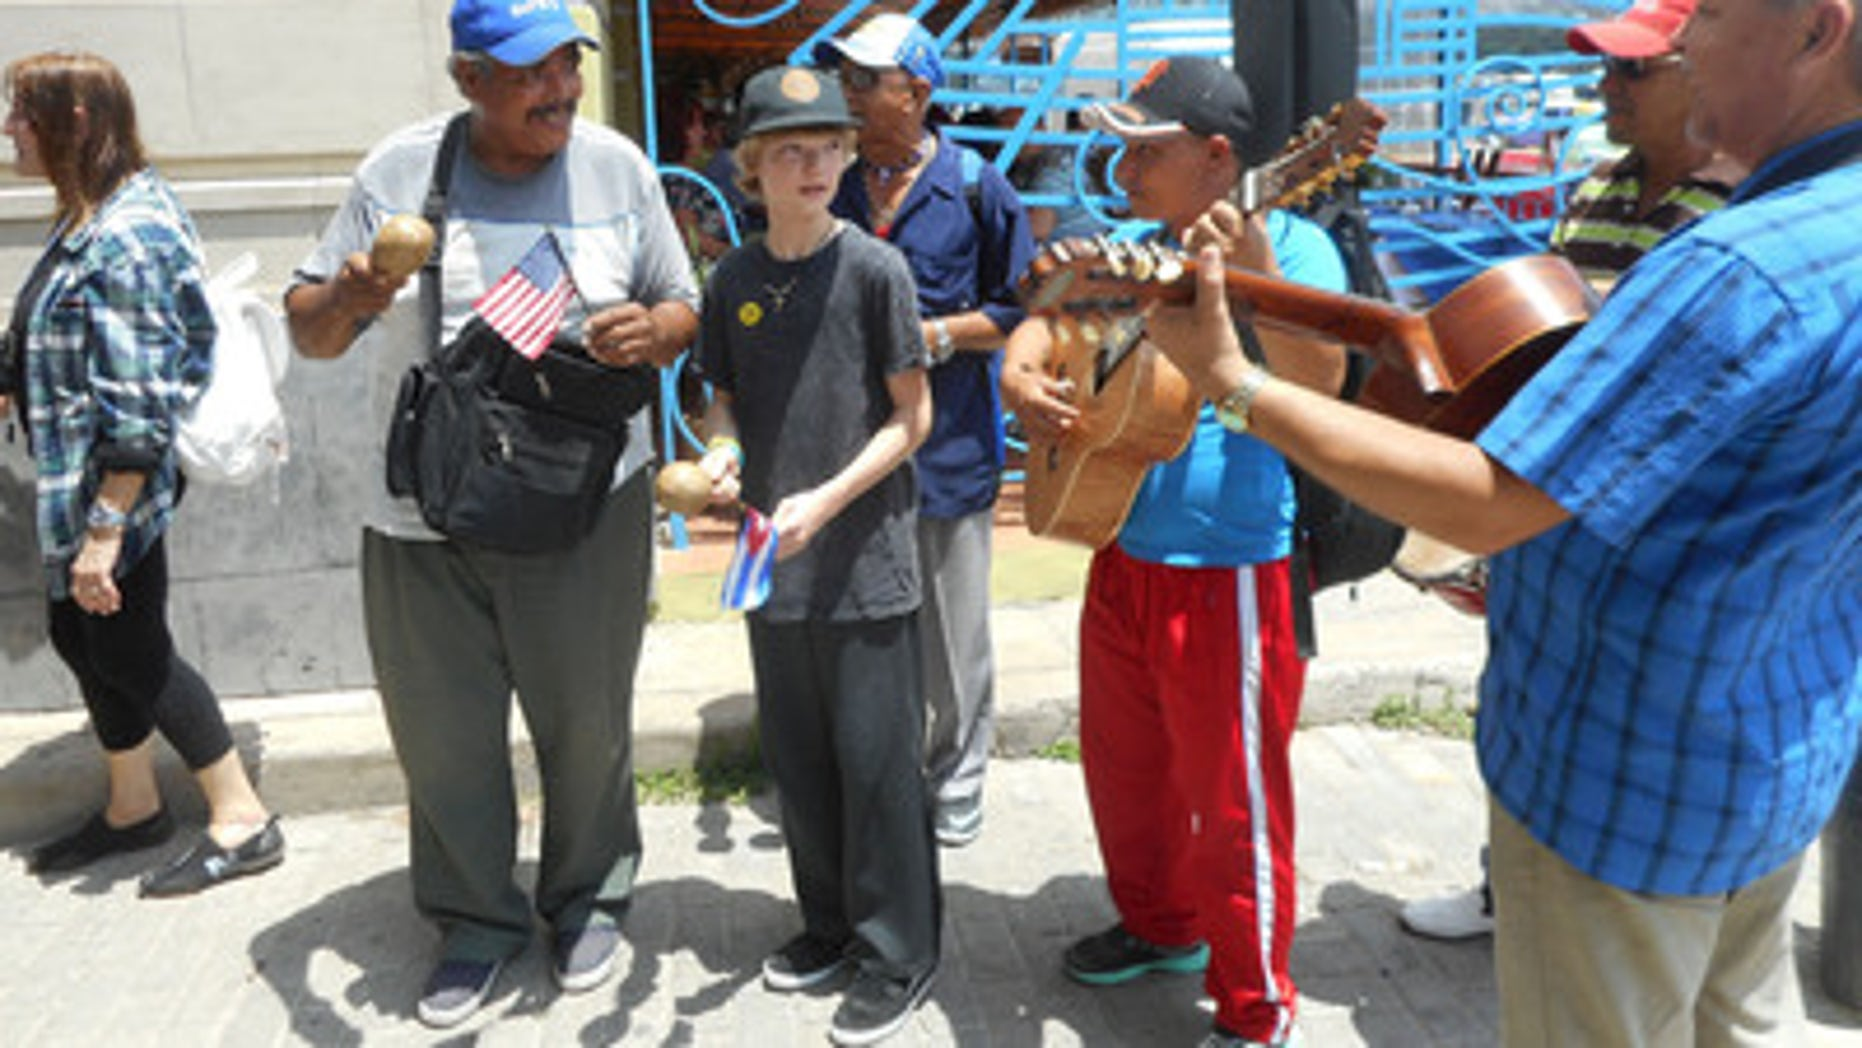 Flags exchanged with street vendors and musicians in Old Havana.